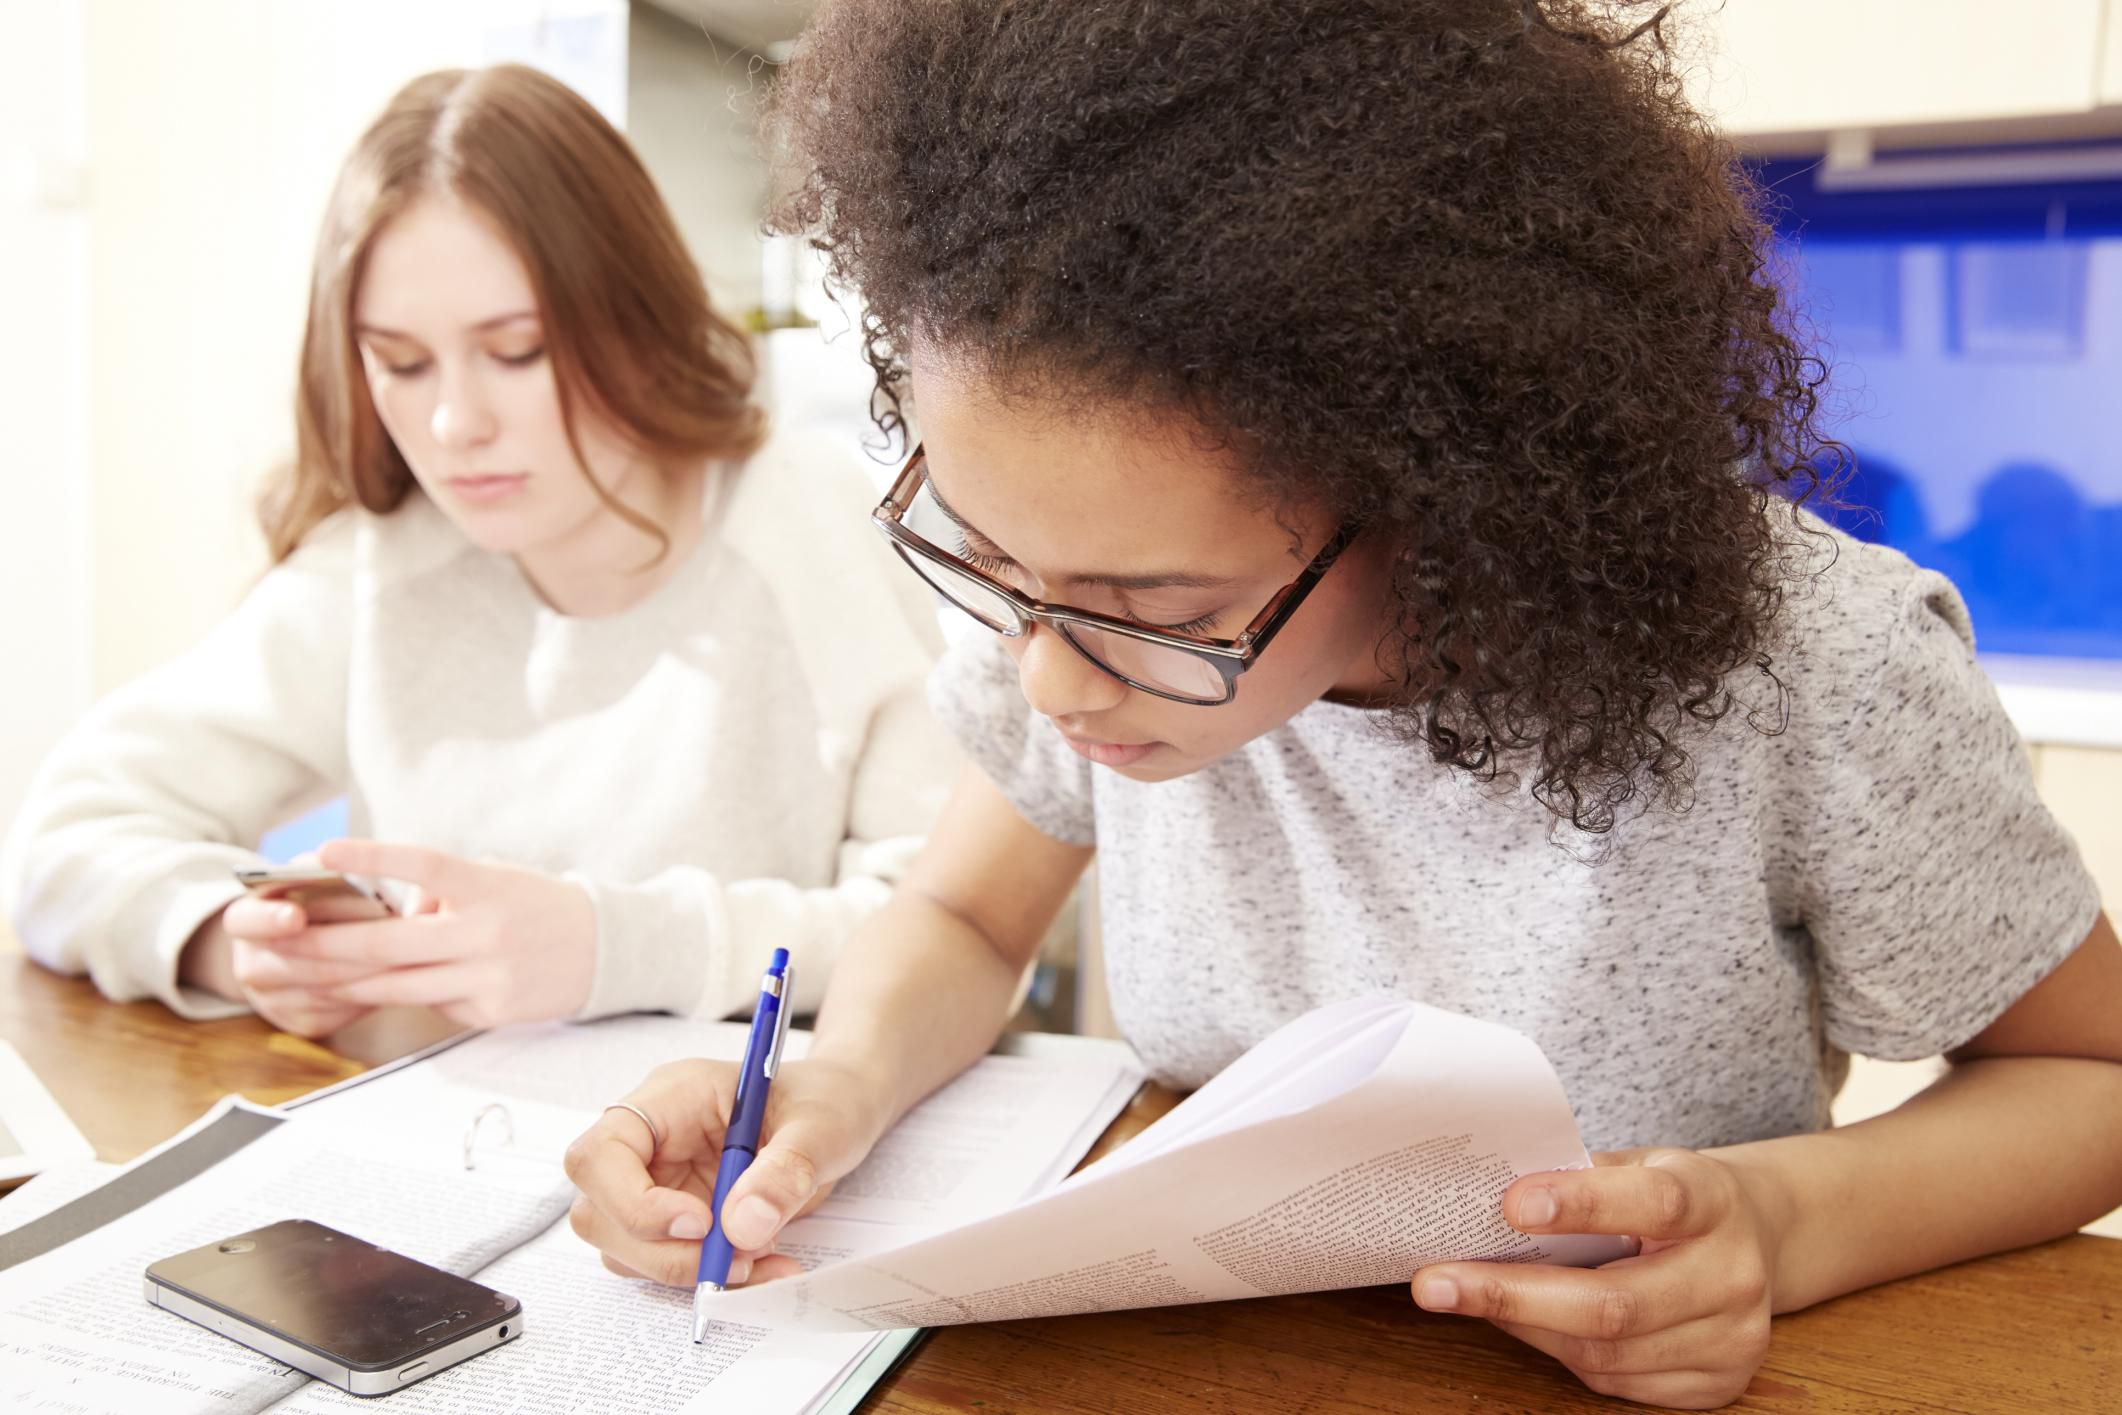 rationale poor study habits Start studying exam 3 practice questions: eating disorders learn vocabulary, terms, and more with flashcards, games, and other study tools.